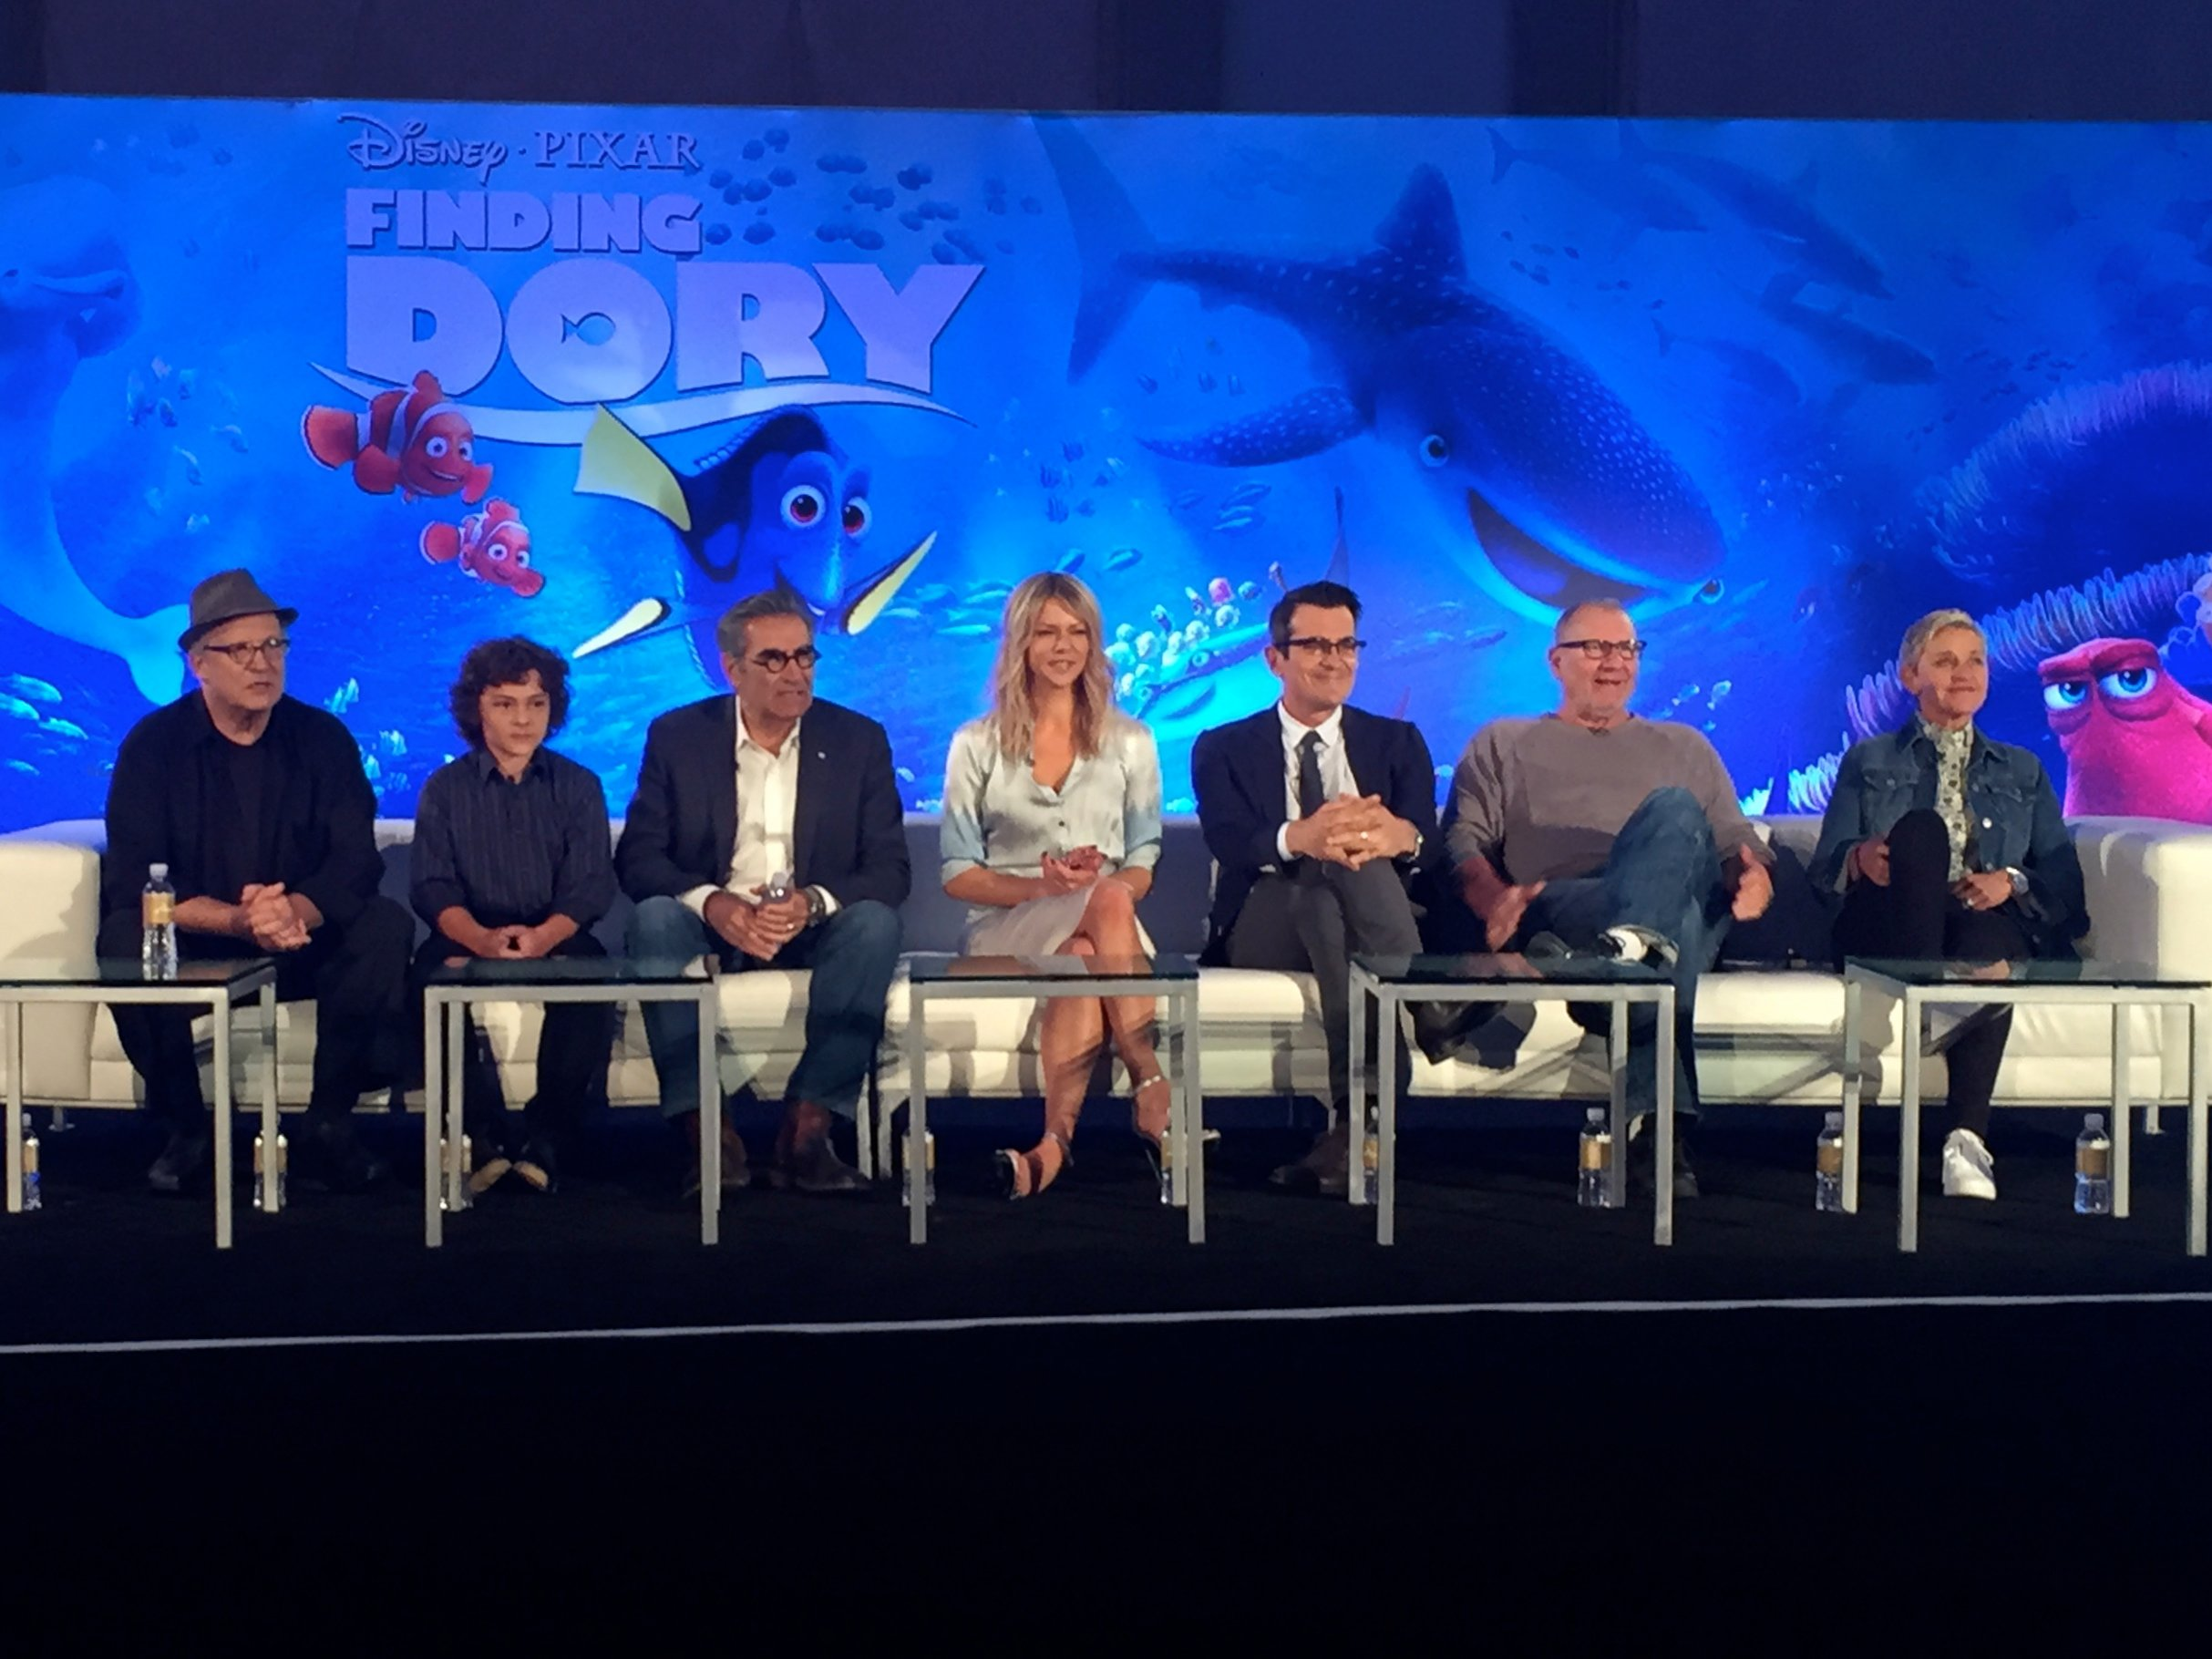 The cast of Finding Dory